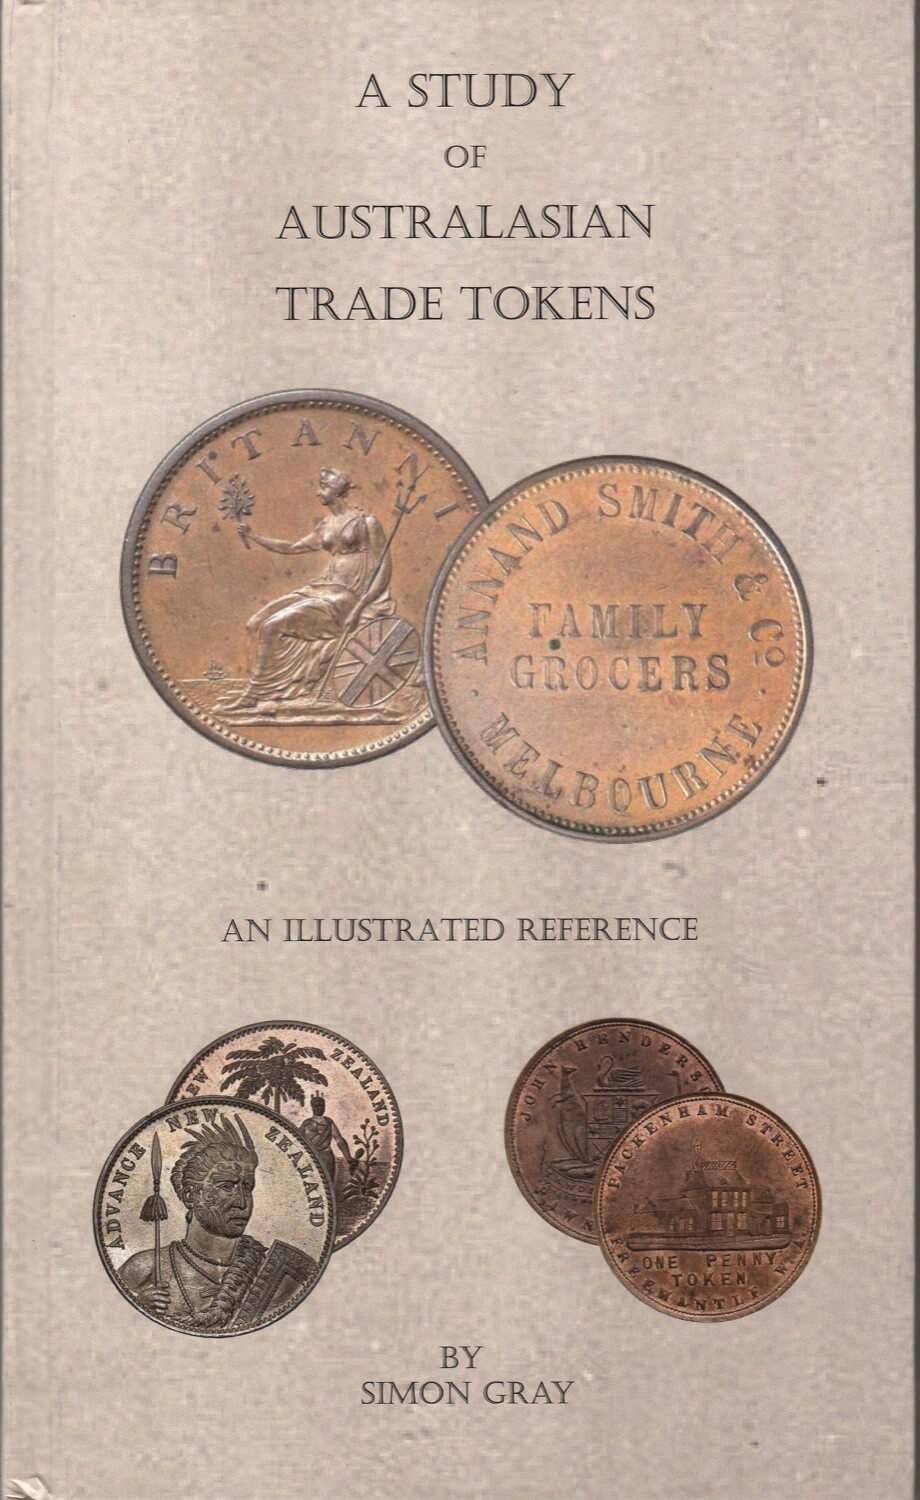 A Study of Australasian Trade Tokens Book By Simon Gray product image